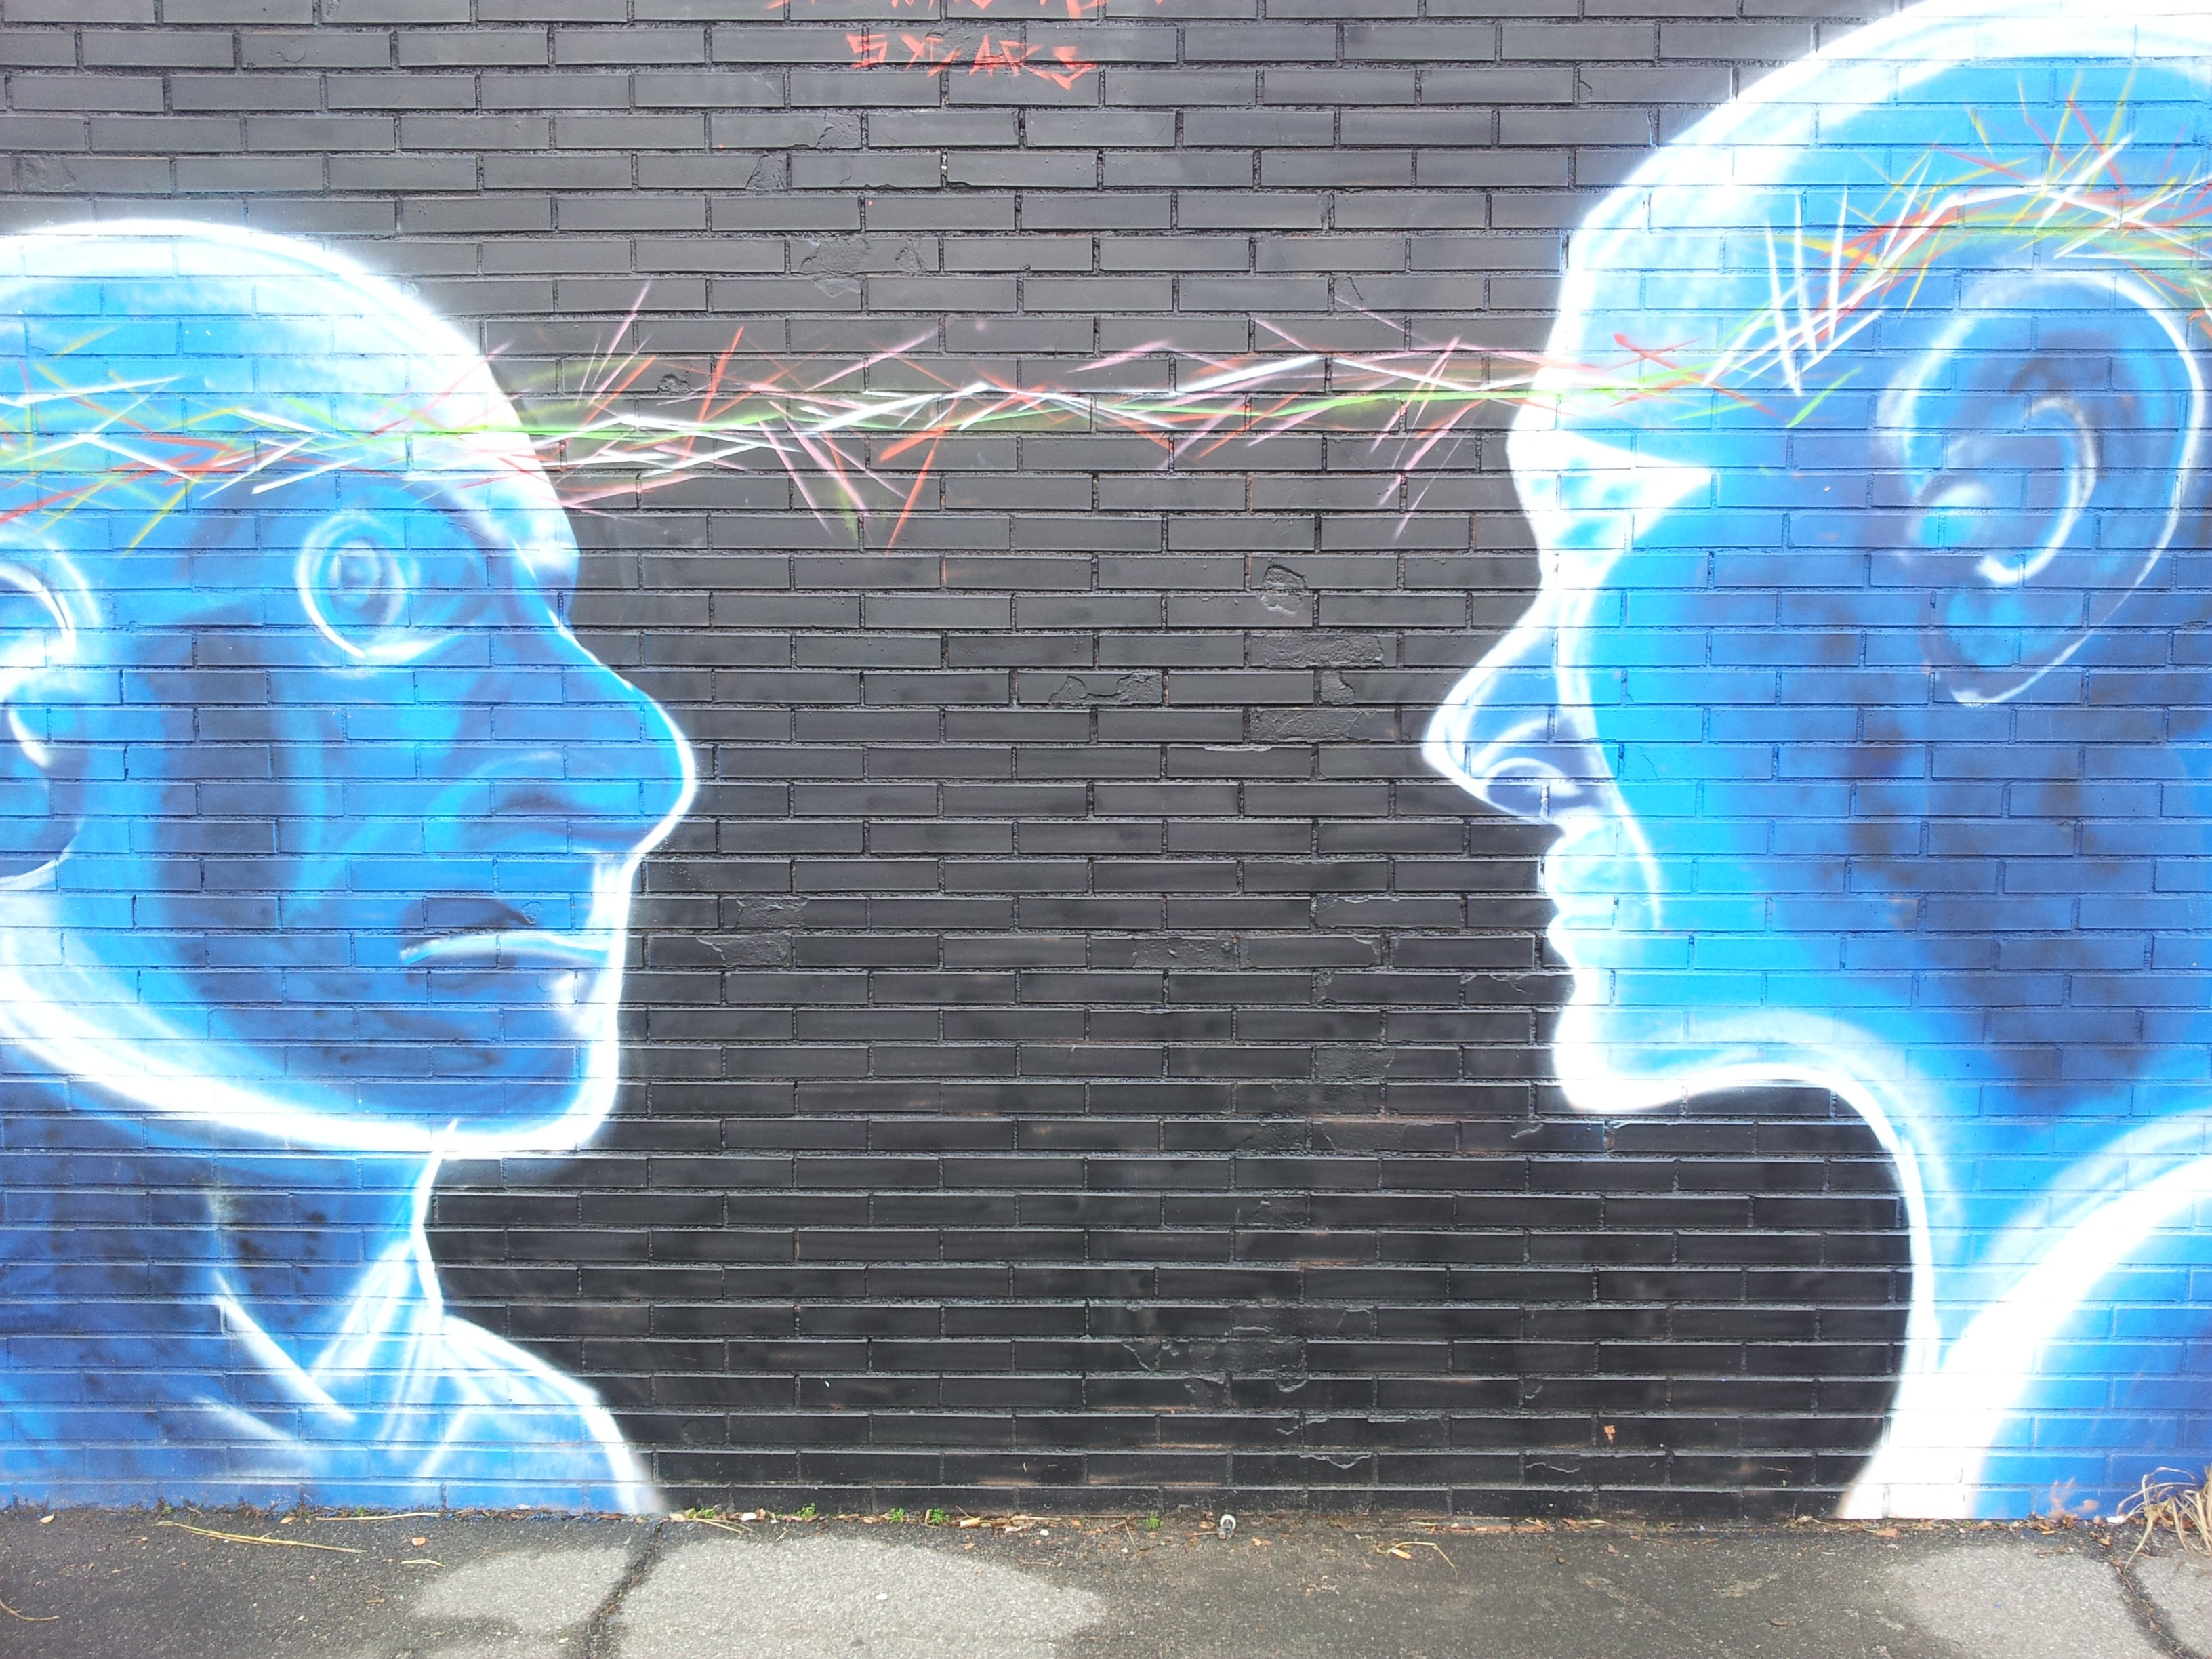 A brick wall mural of two cartoonish people staring at each other.